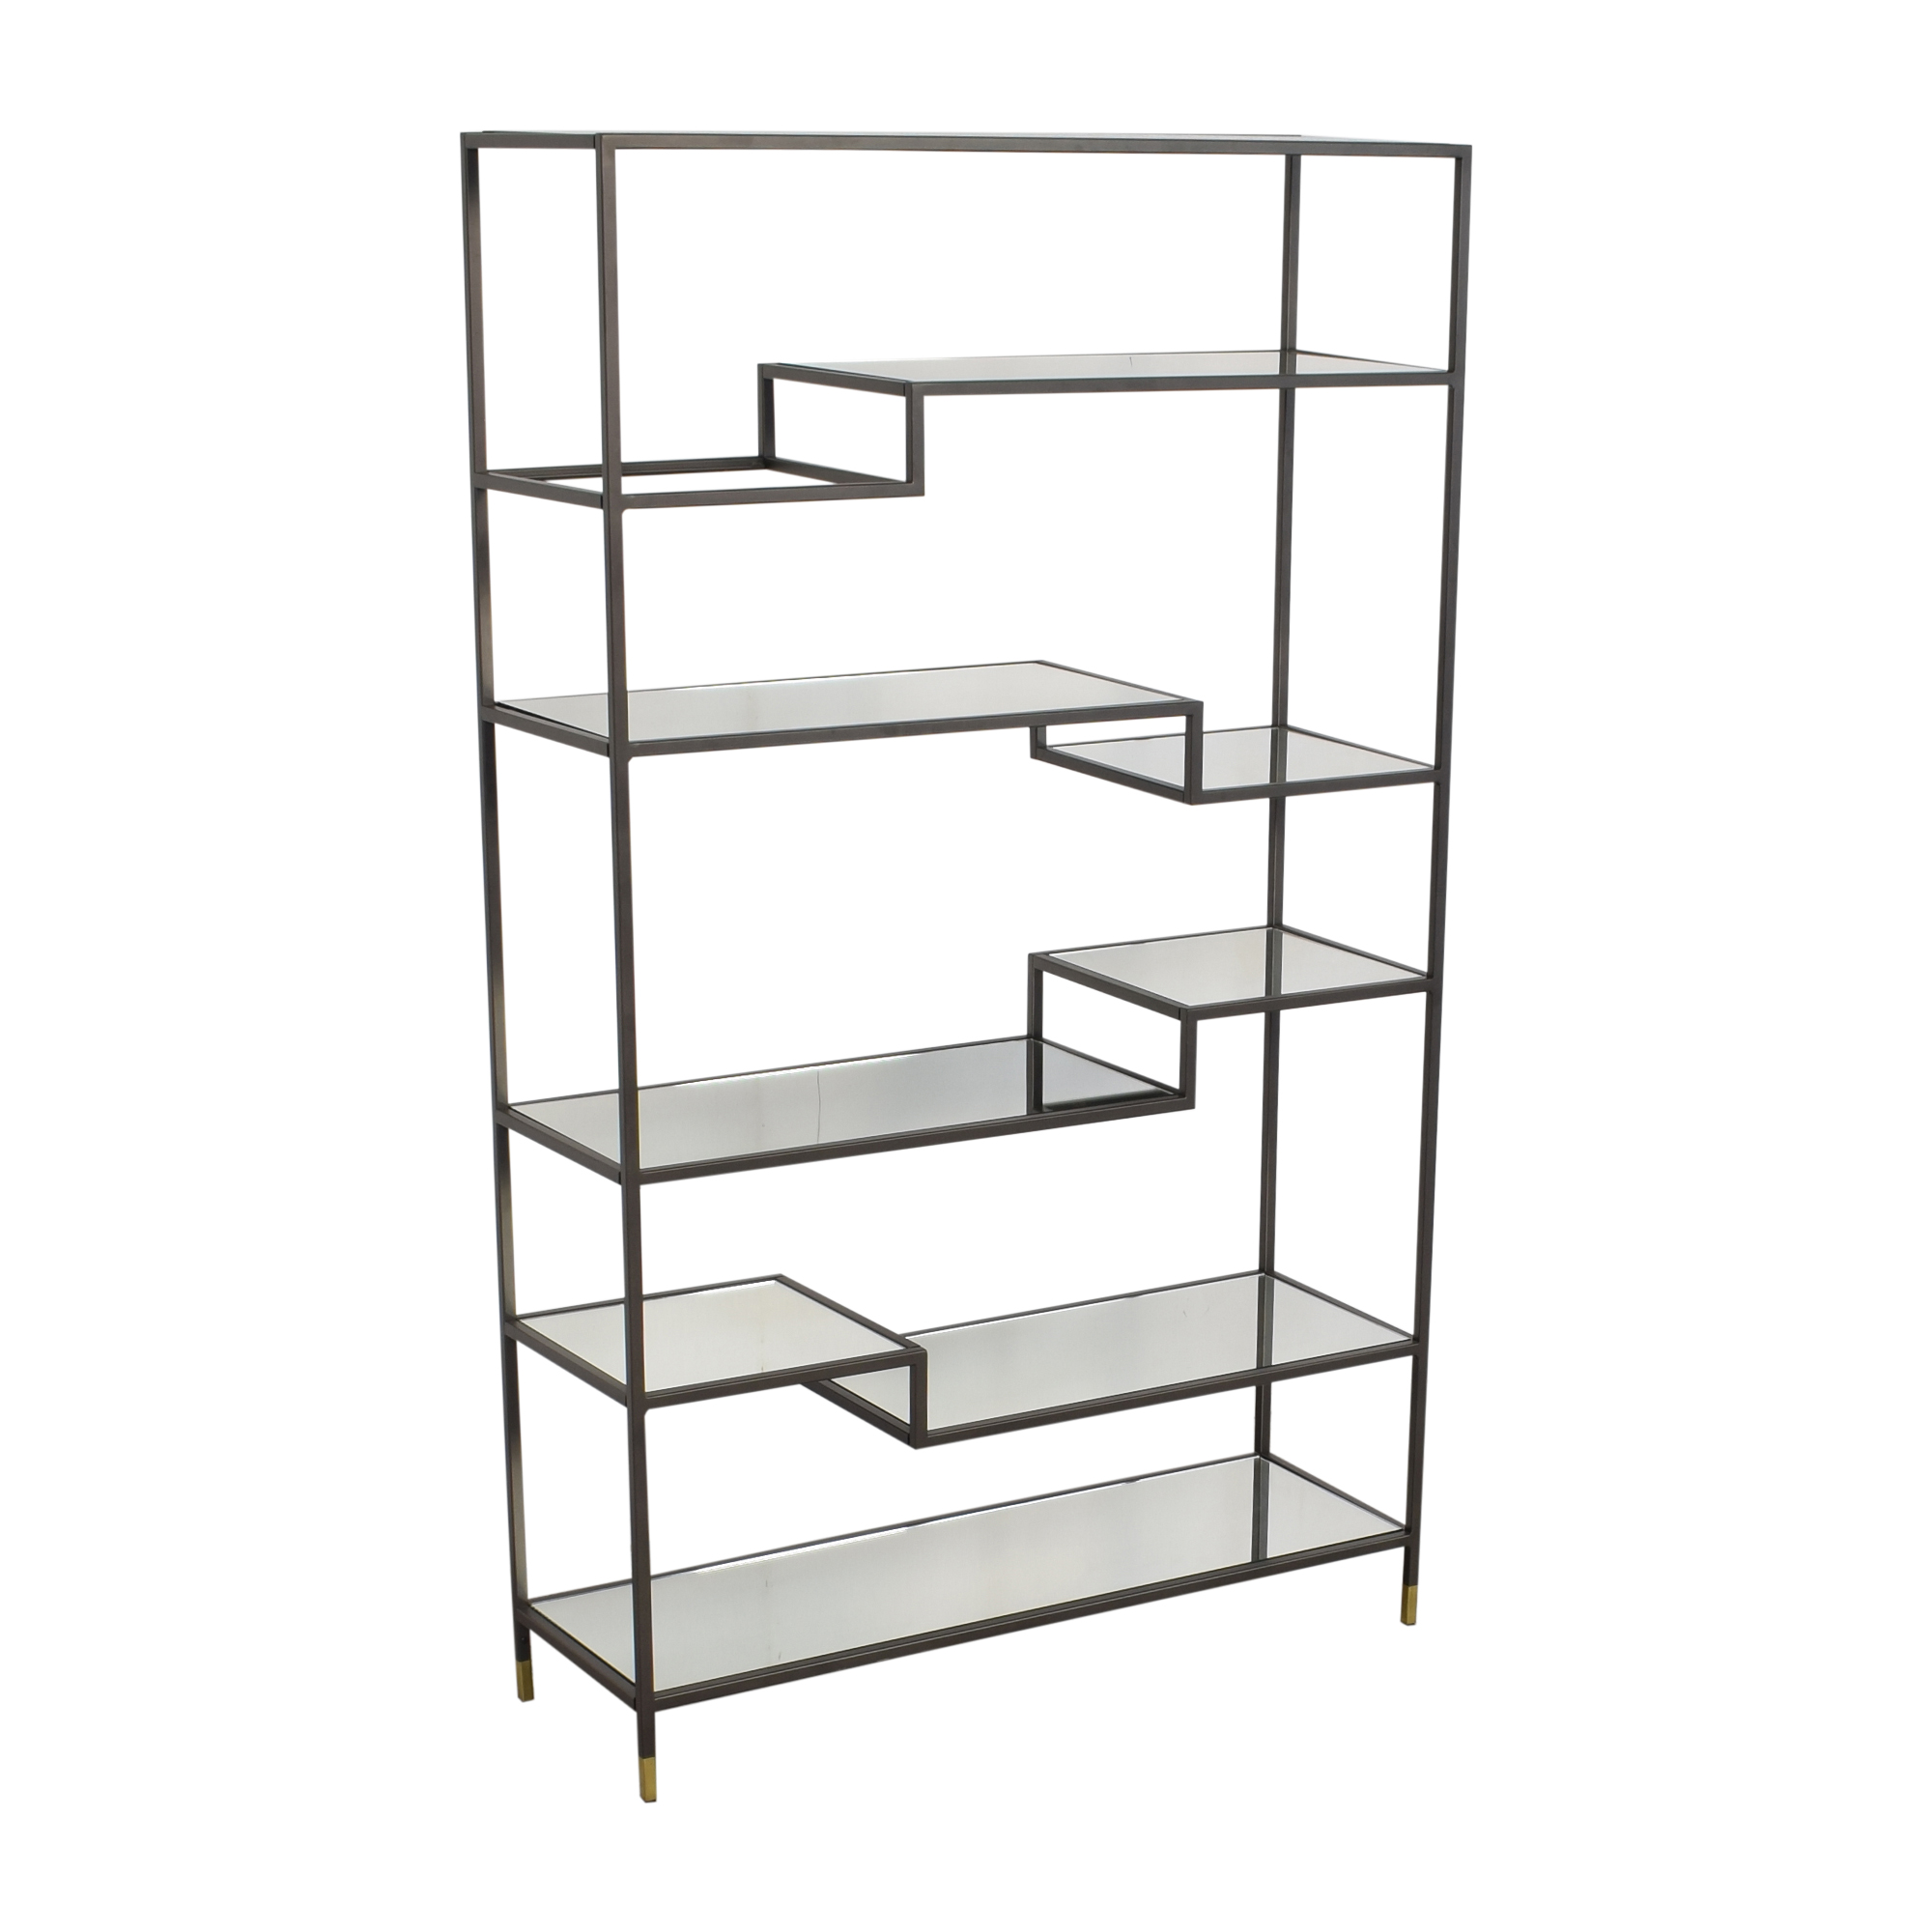 West Elm West Elm Tiered Tower Bookcase gray